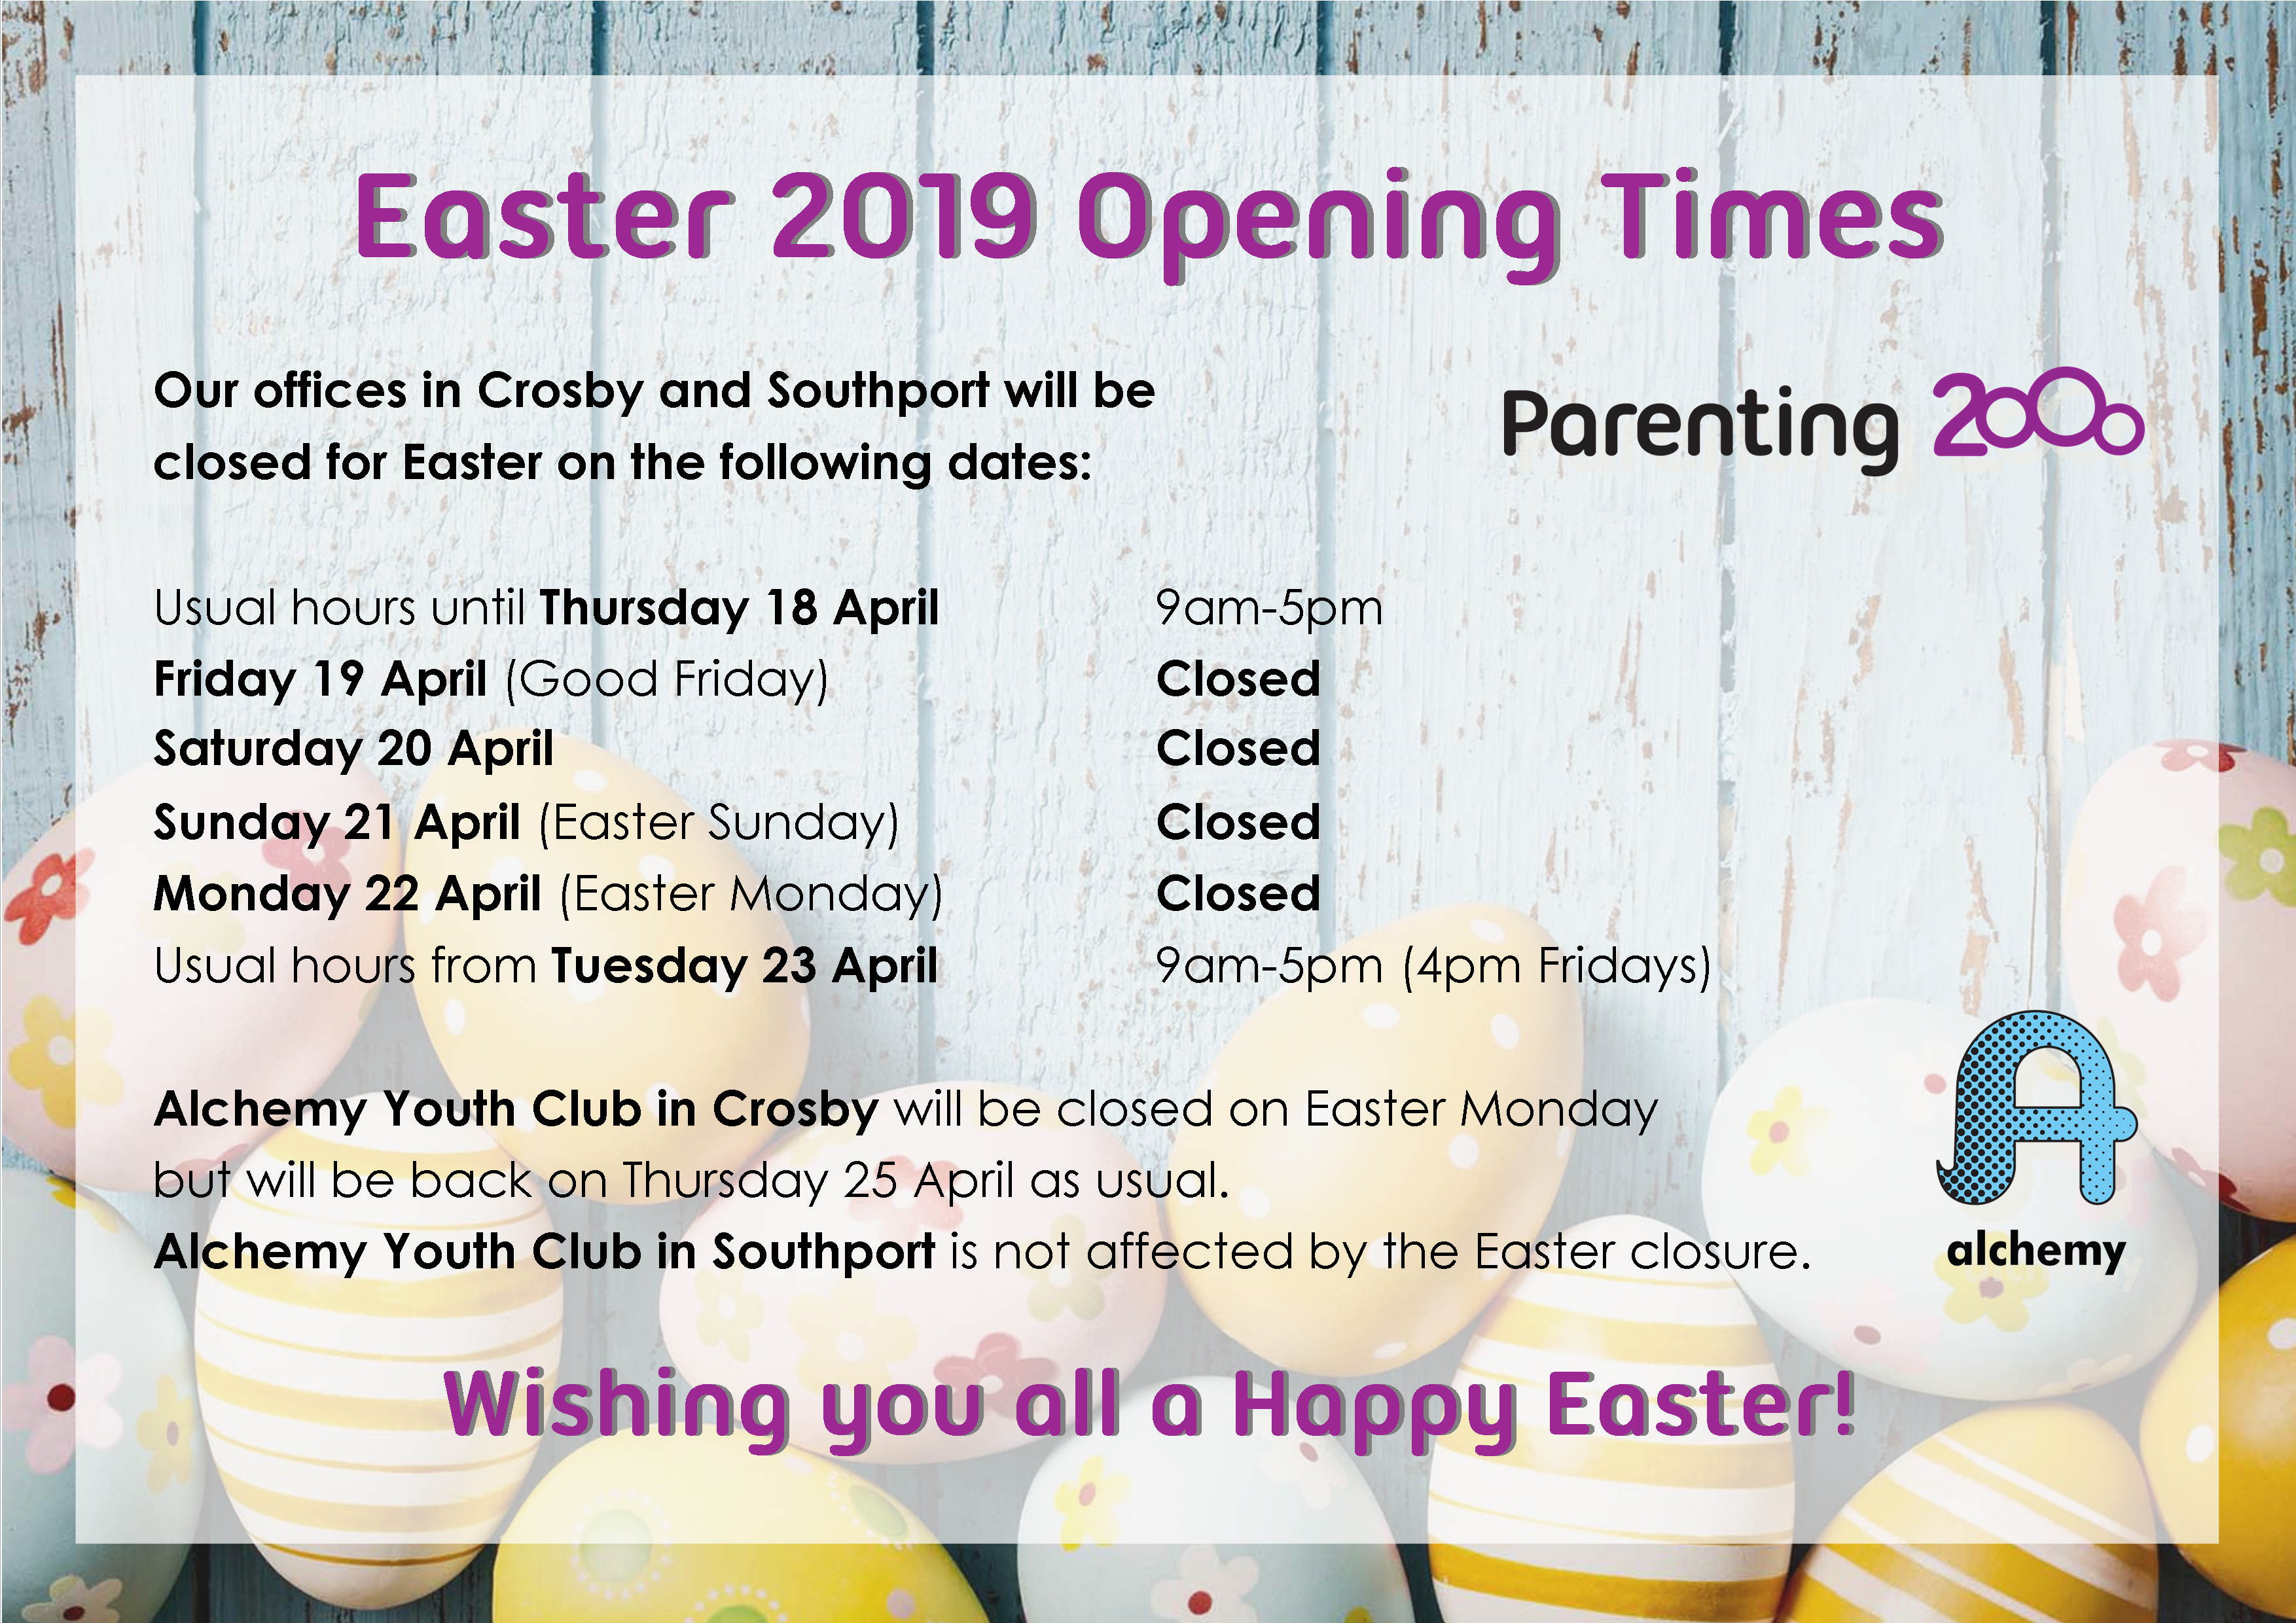 c0a261cff2 Easter 2019 Opening Times